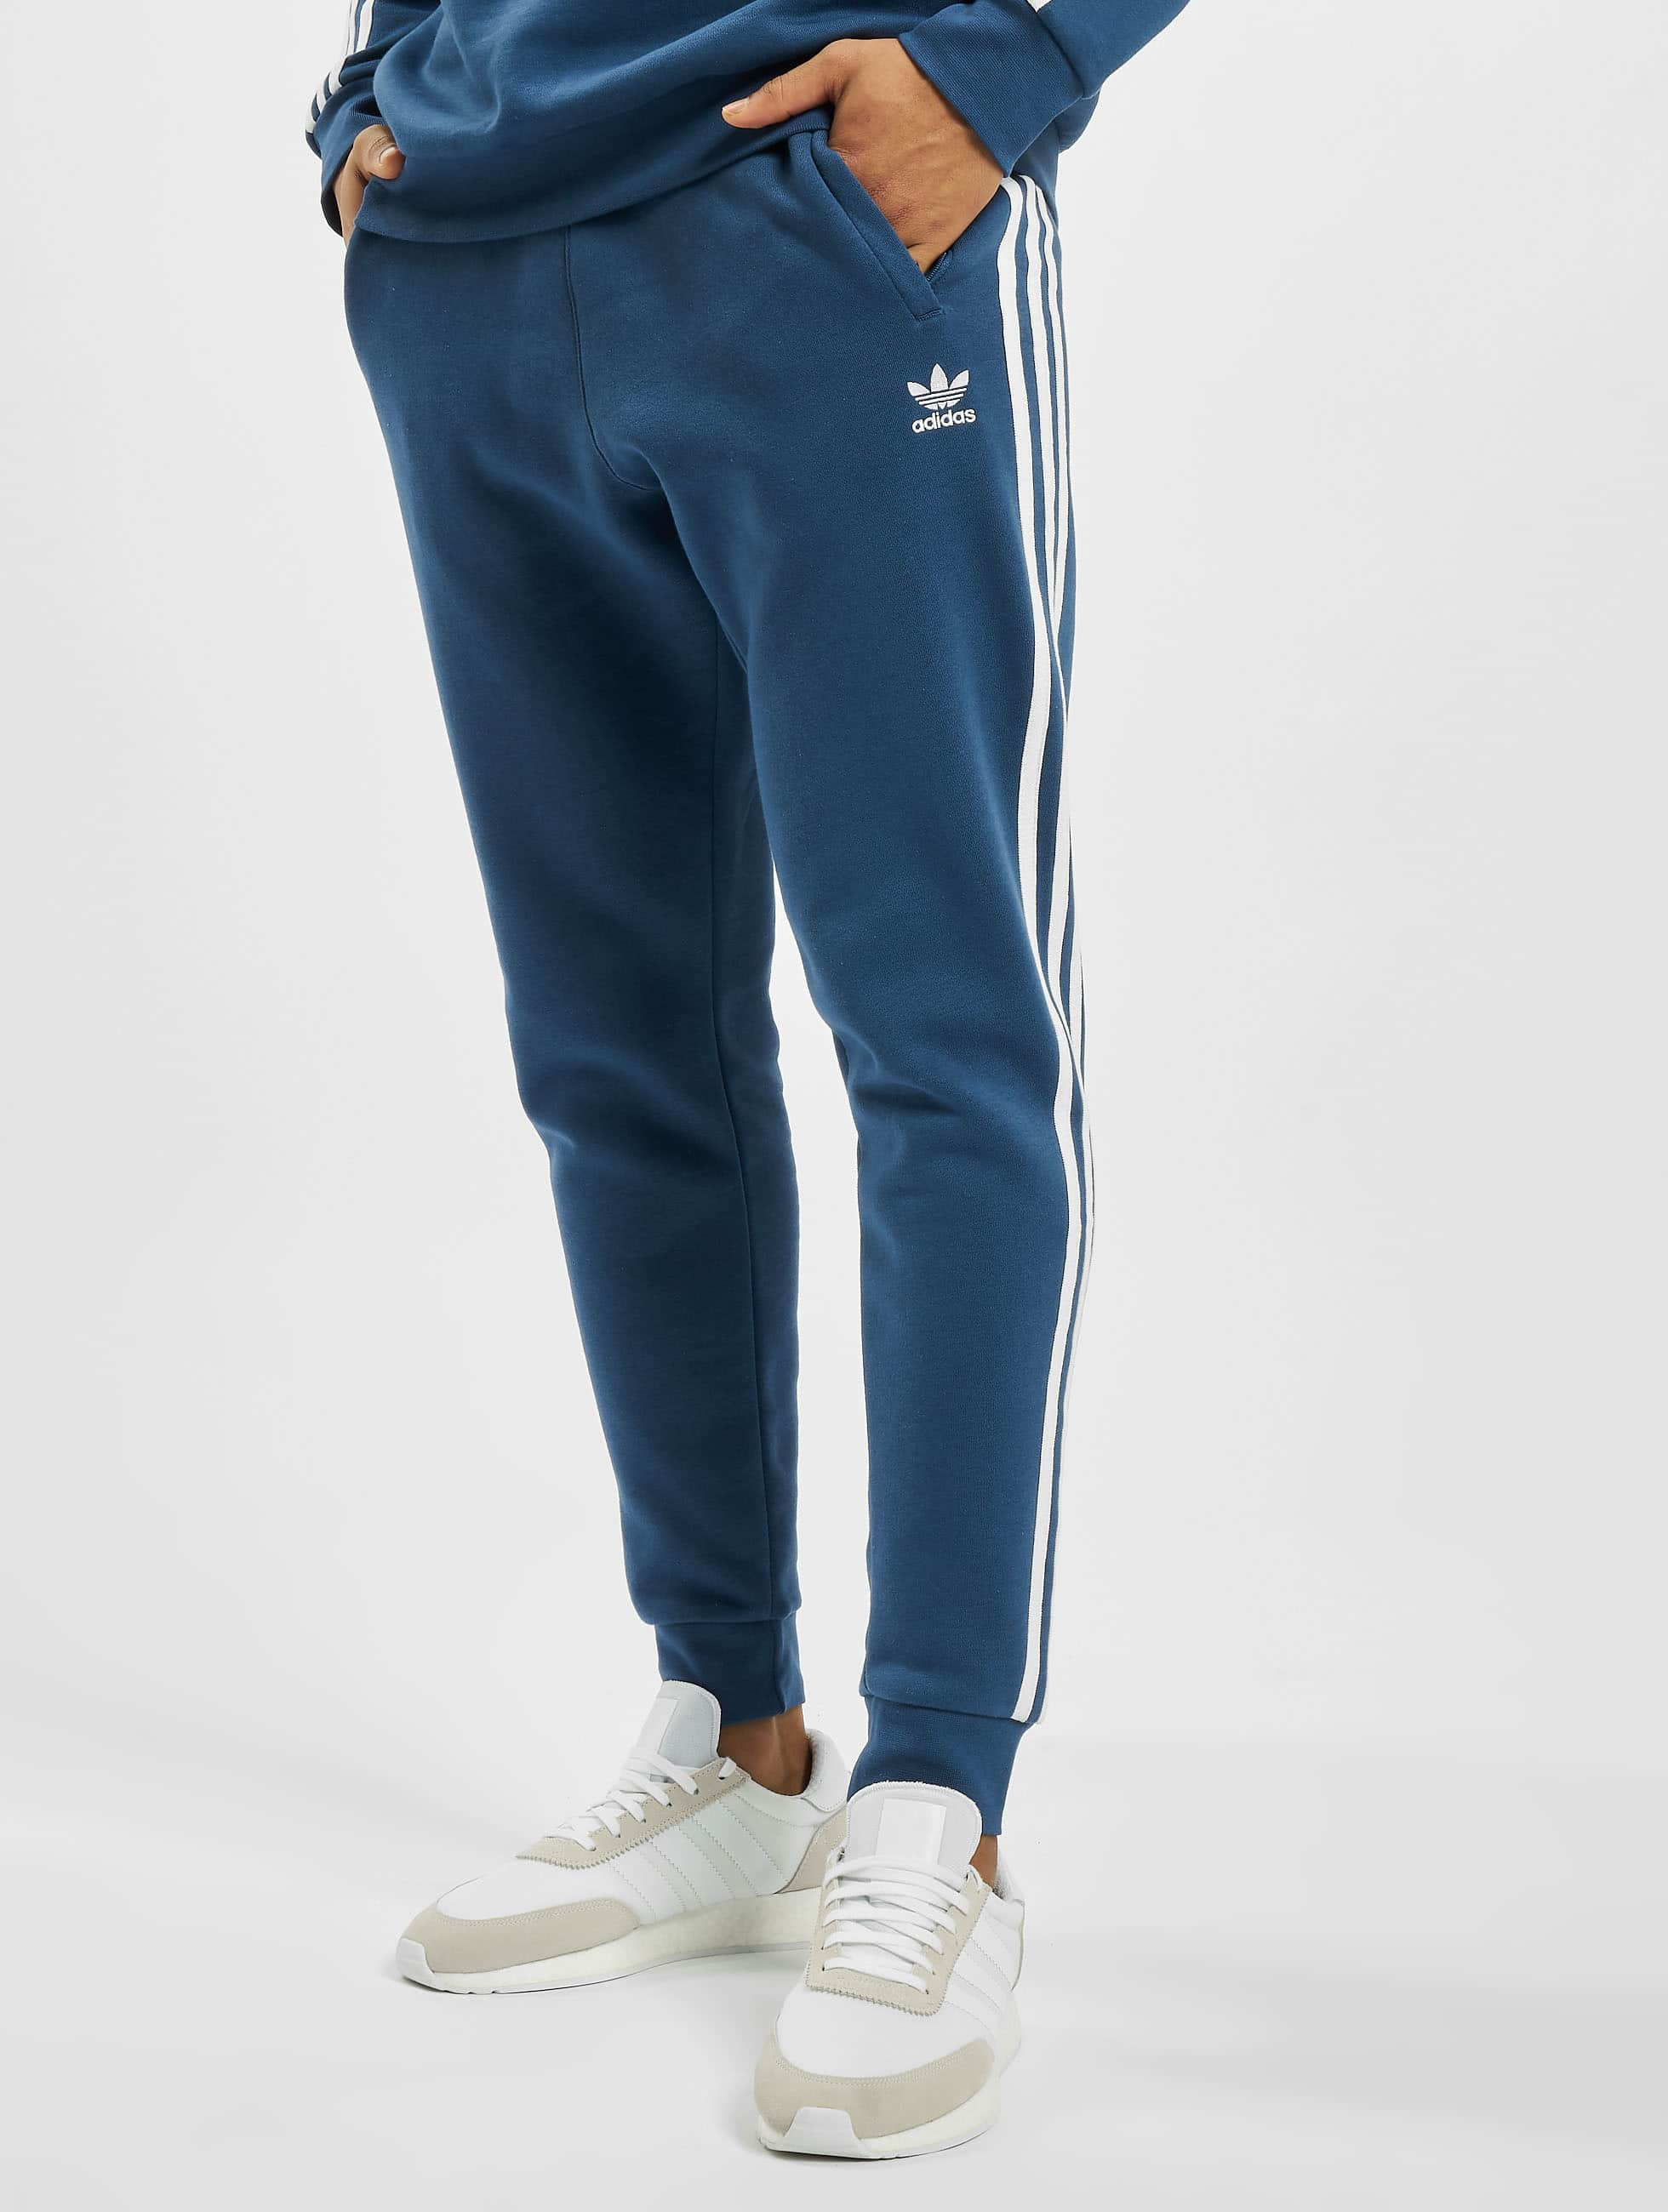 Adidas 3-Stripes Sweat Pants Night Marine